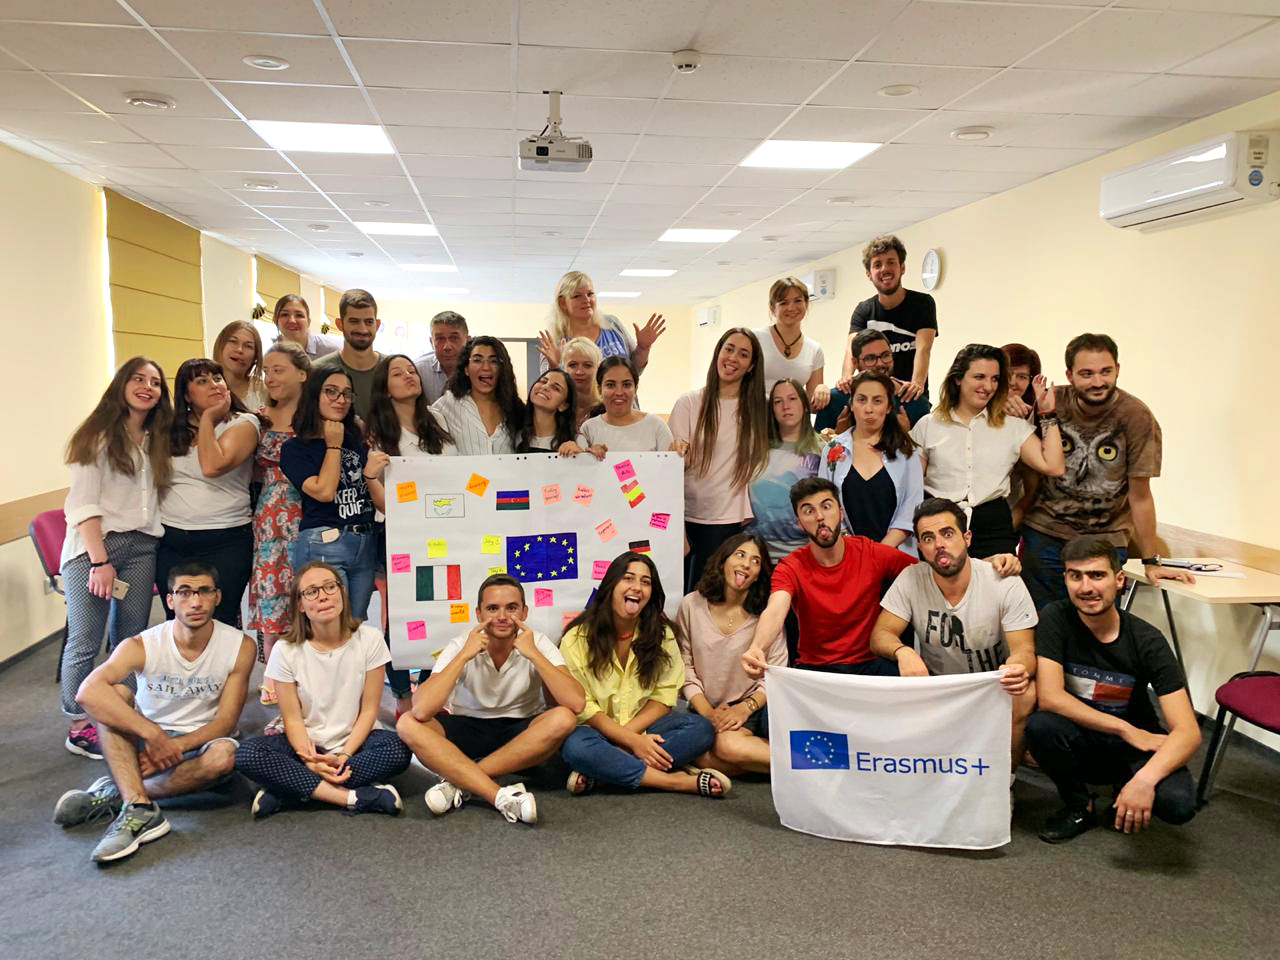 """The project of Erasmus+ """"Expanding opportunities for youth"""" which took place in Sumy (Ukraine)"""